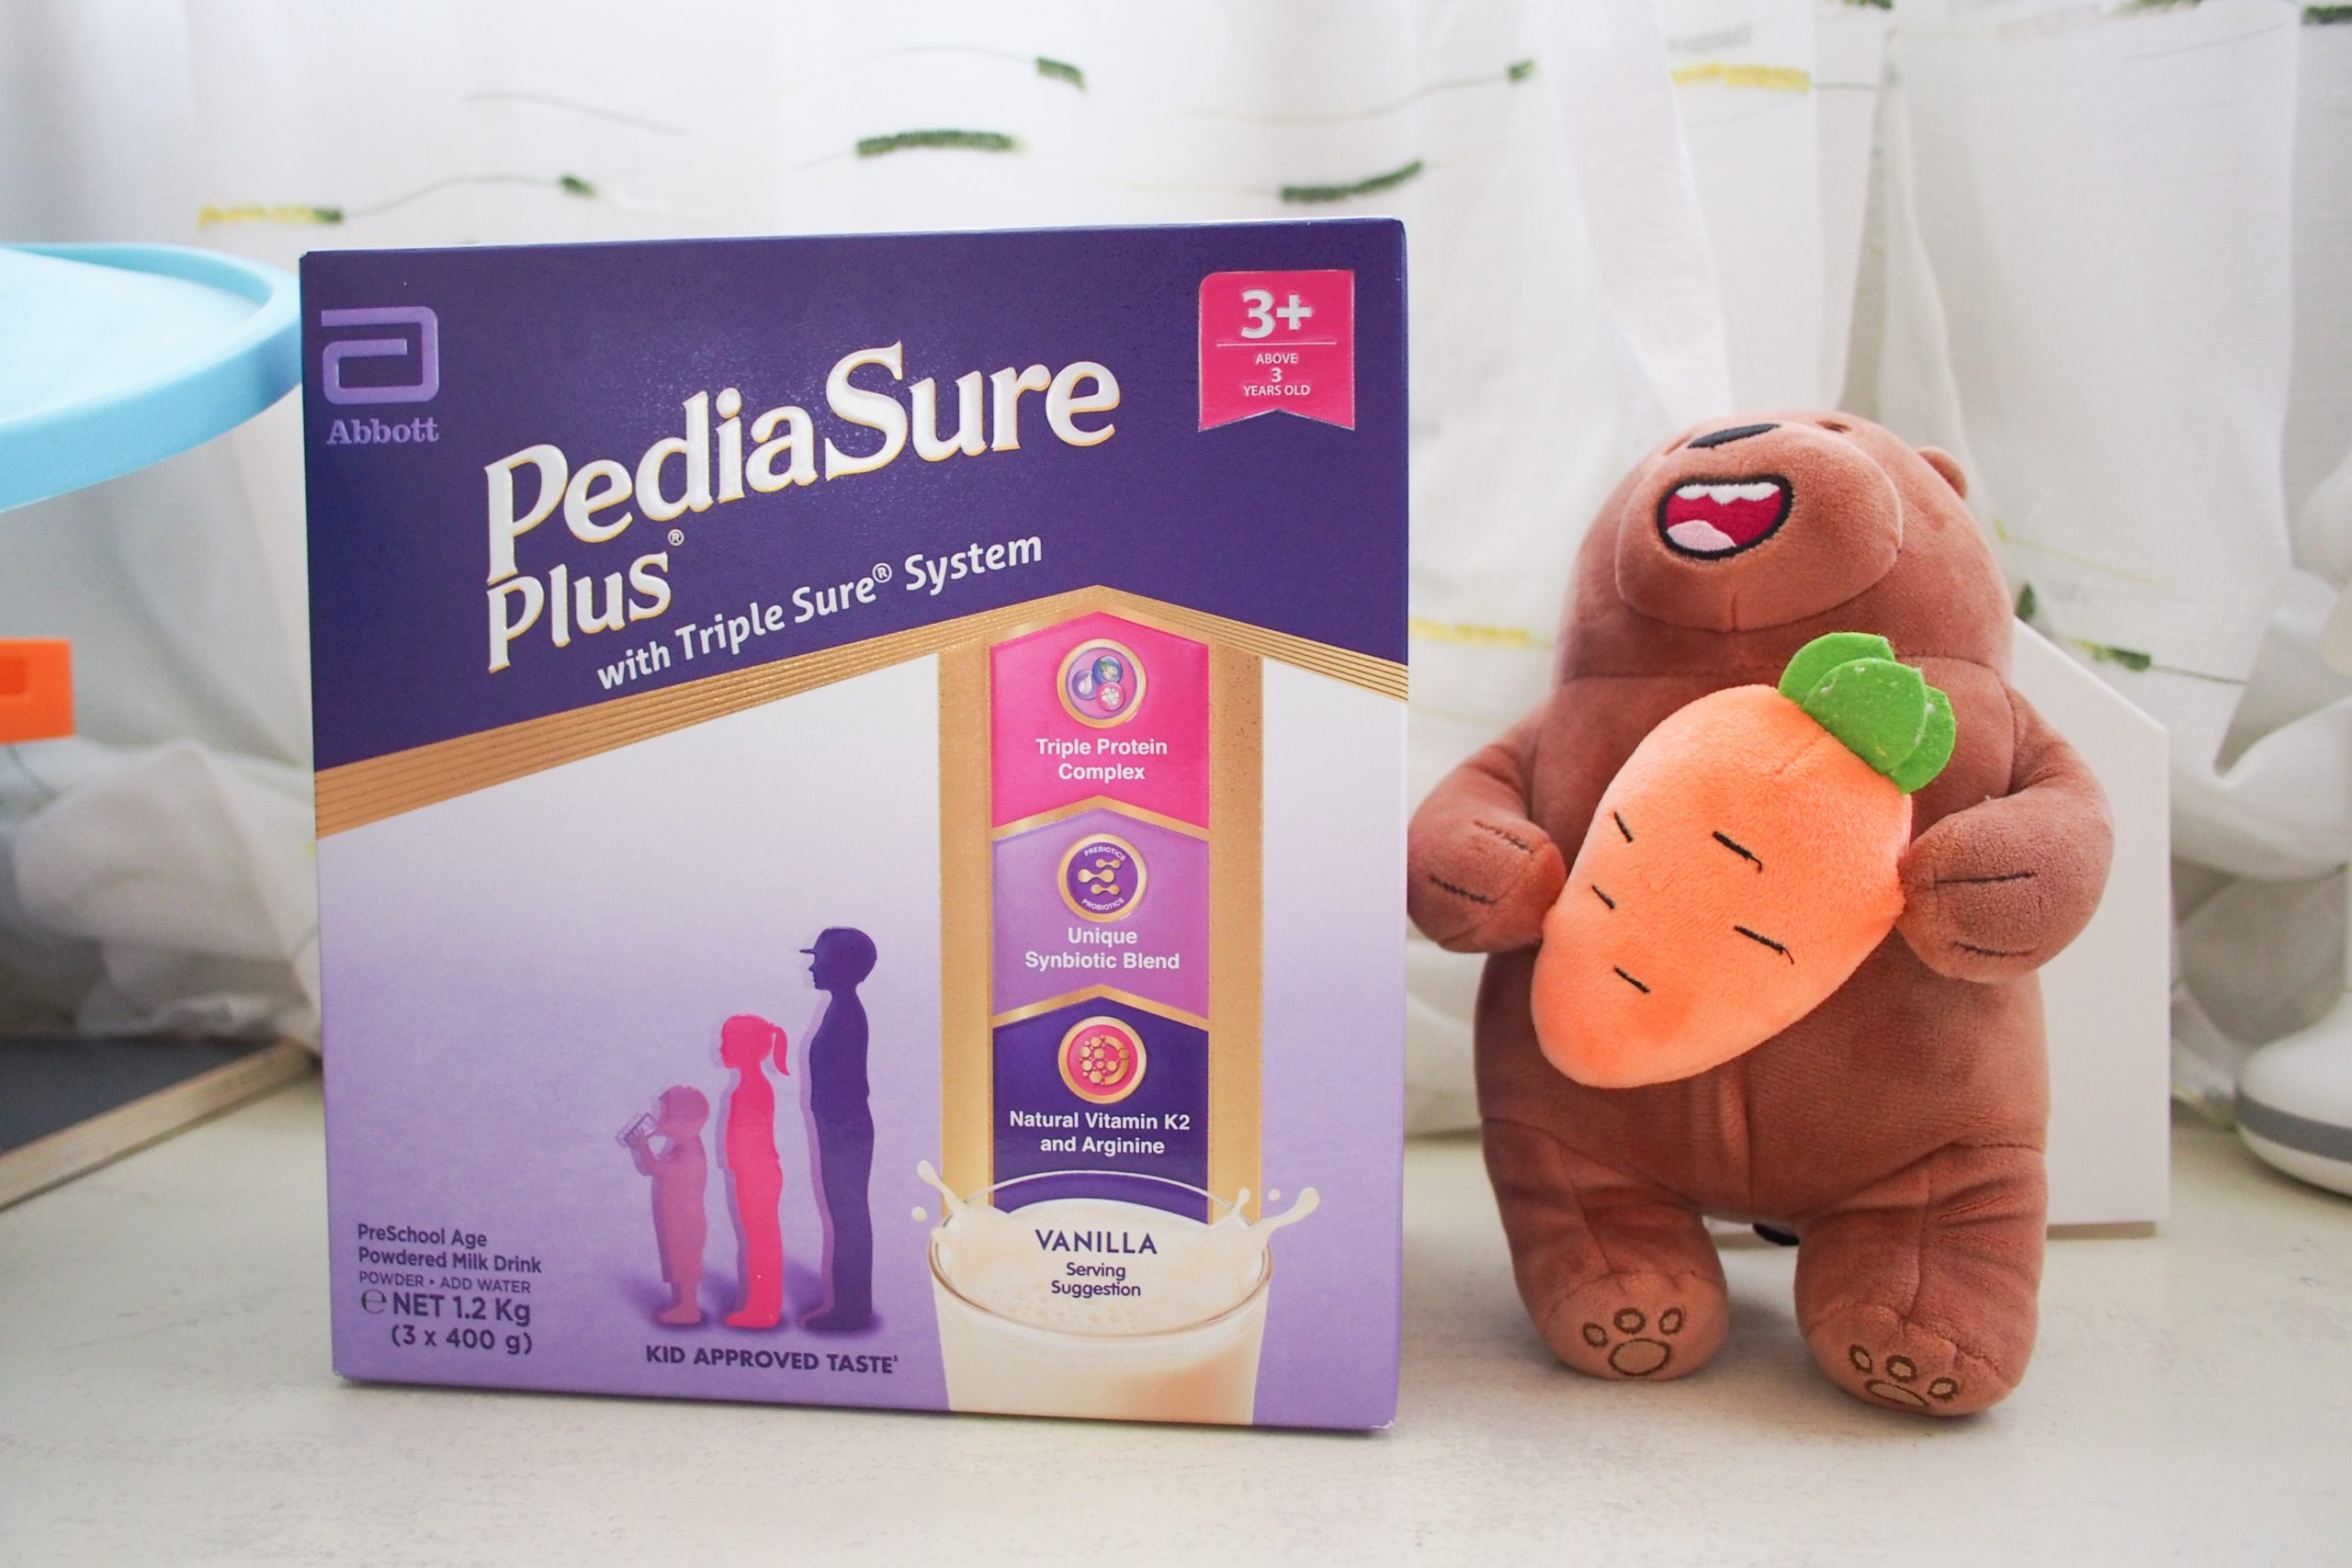 Abbott Philippines and Shopee promotes Nutrition for the Whole Family: We're taking part with PediaSure Plus